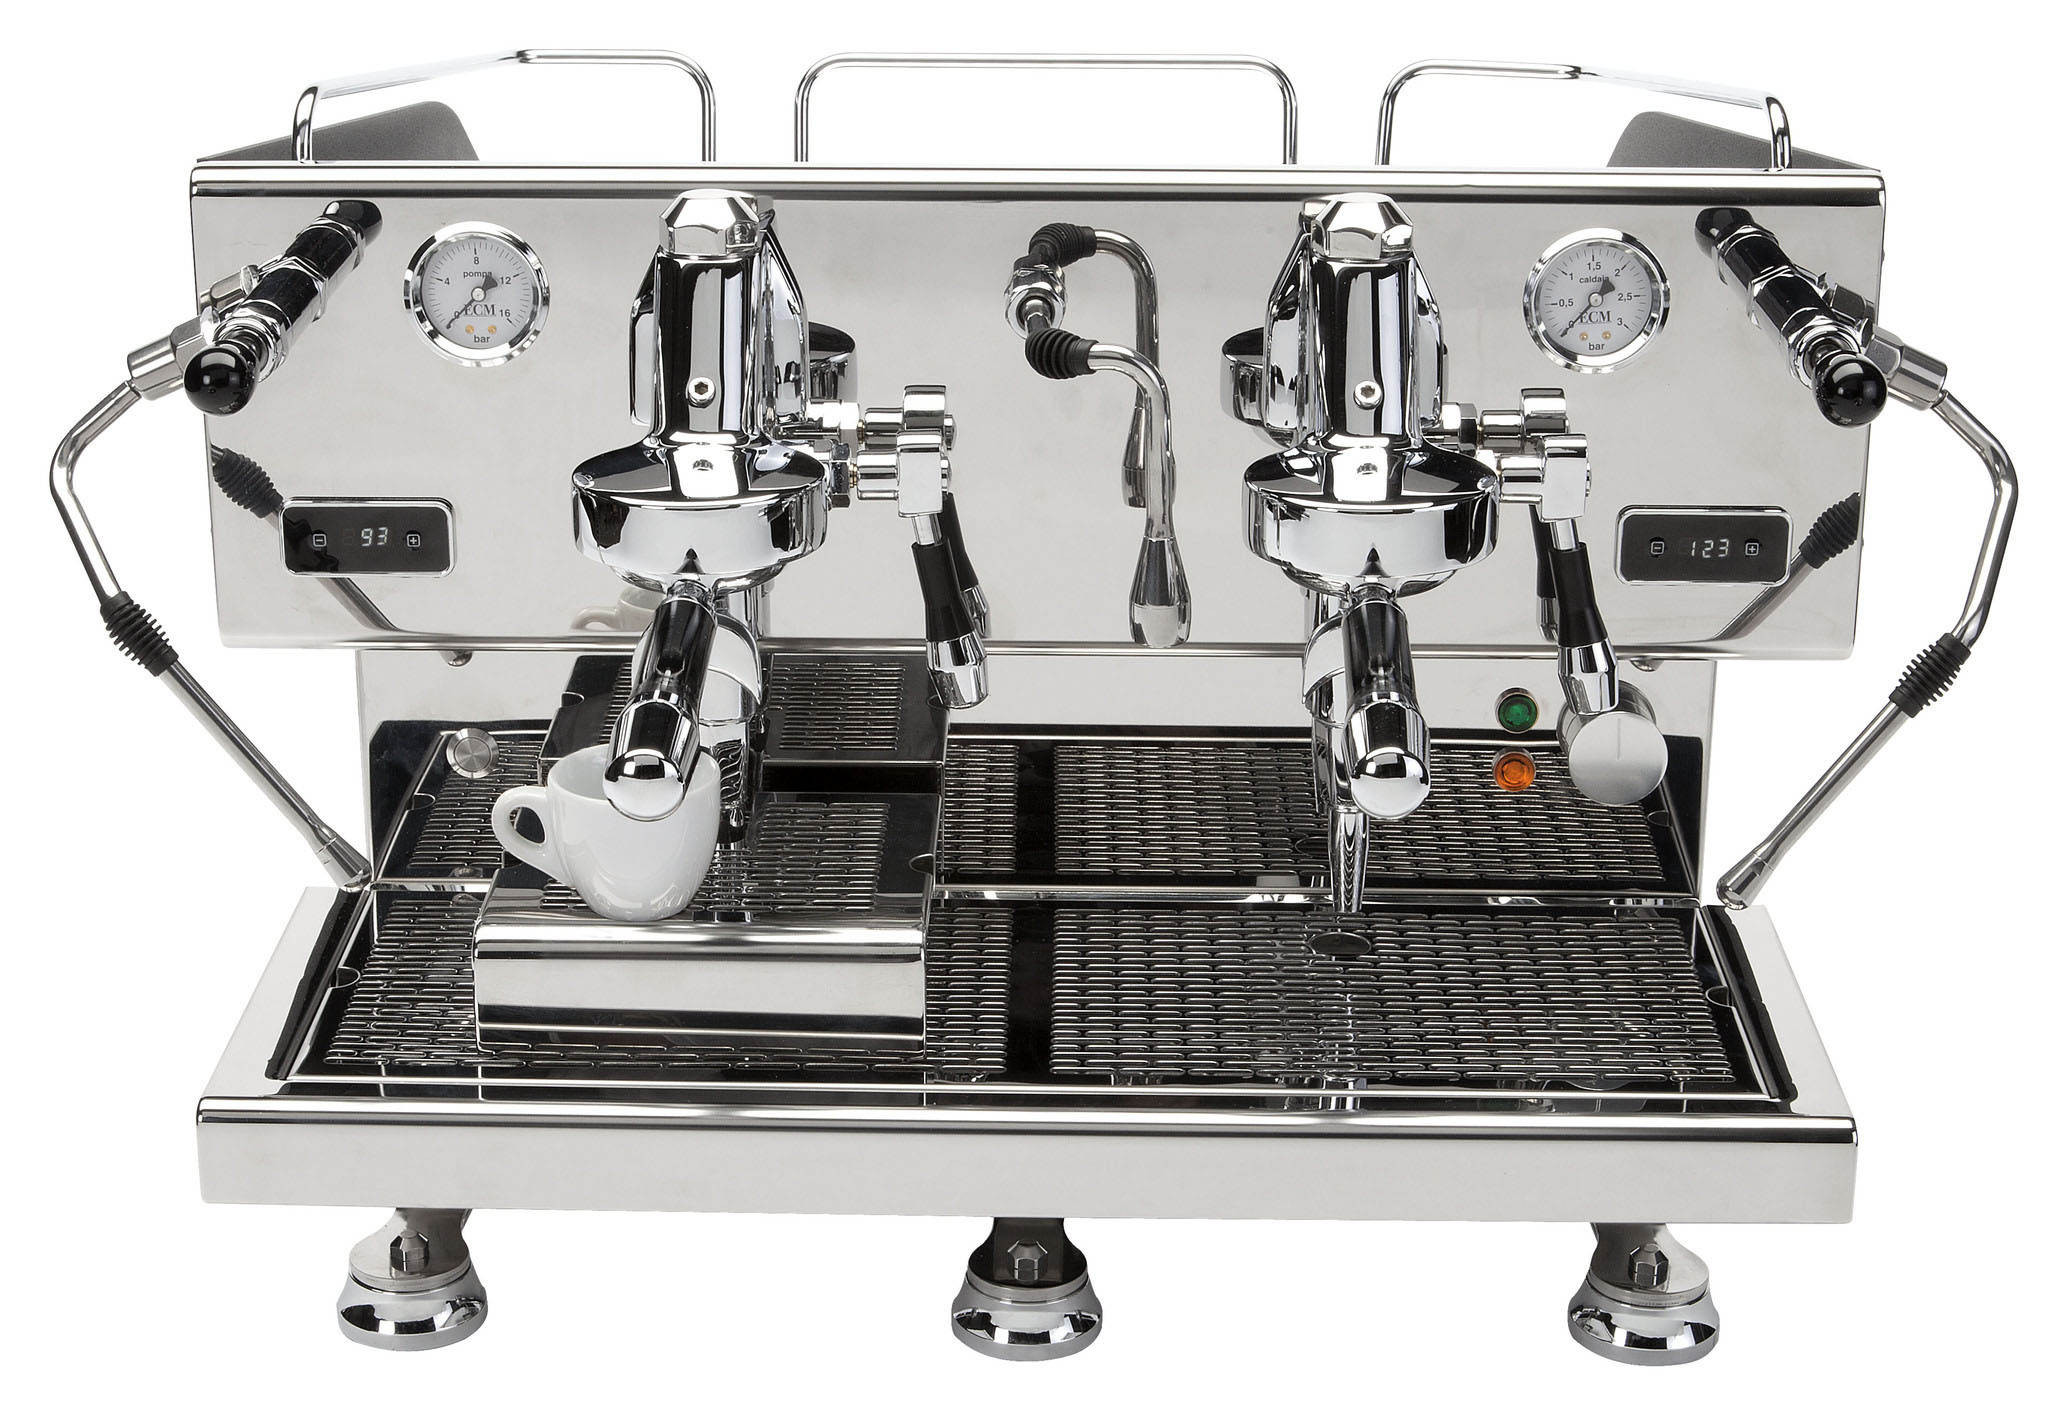 ECM Controvento Due 2 groeps espressomachine